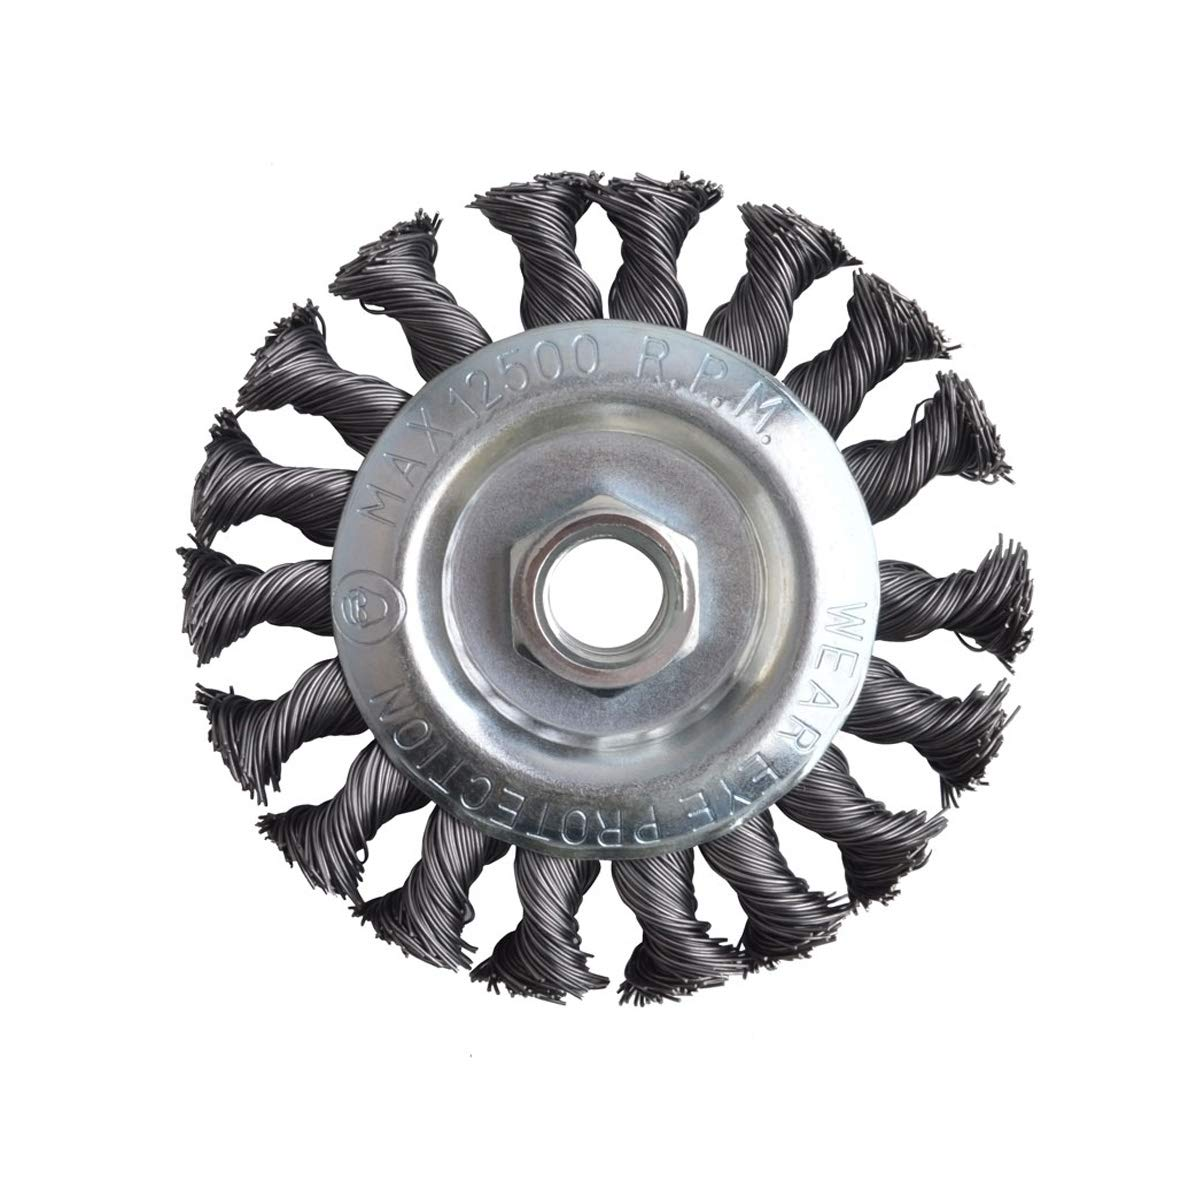 Twist Knot with 5/8-Inch-11 Threaded Arbor 4-Inch-by-.020-Inch Forney 72759 Wire Wheel Brush